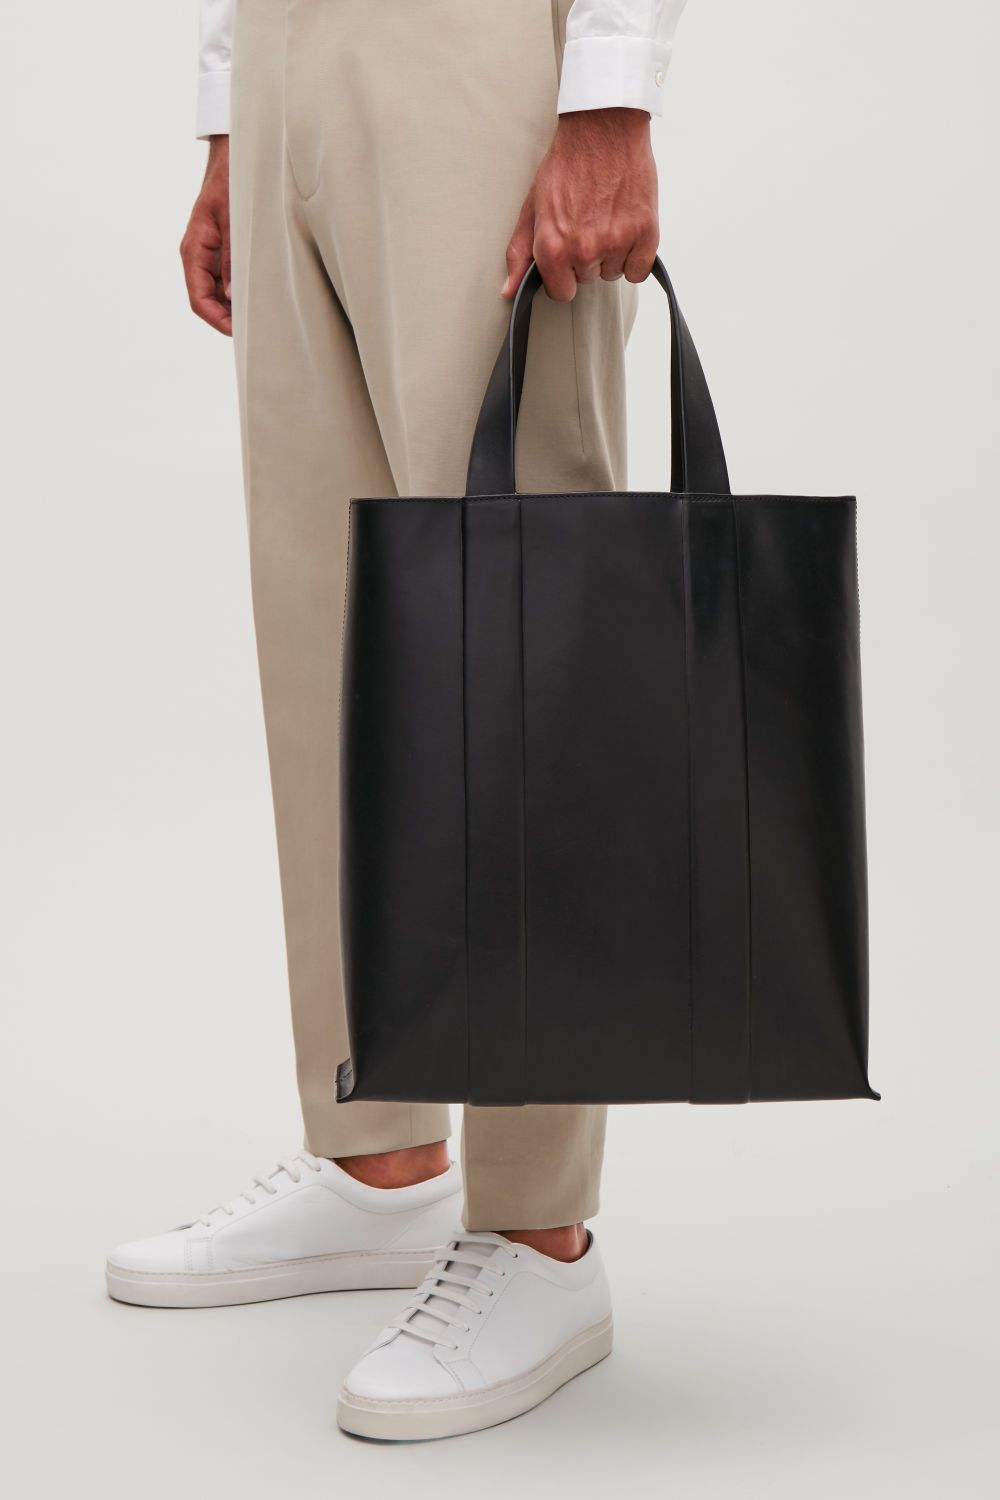 mens tote bag